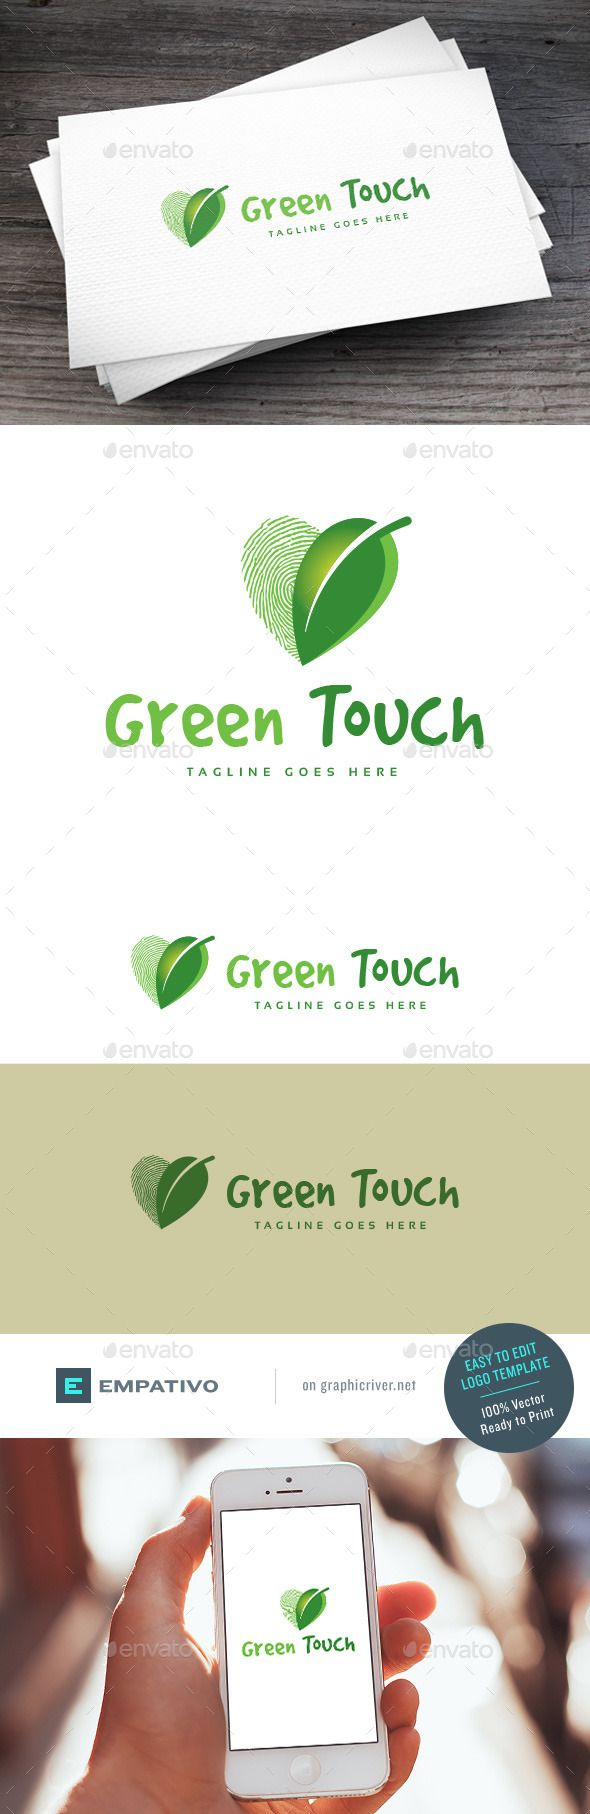 Green Touch Logo Template by empativo Modern, versatile and stylish logo template. Ideal for a wide range of uses. Features  100% vector. Easy to edit color / text